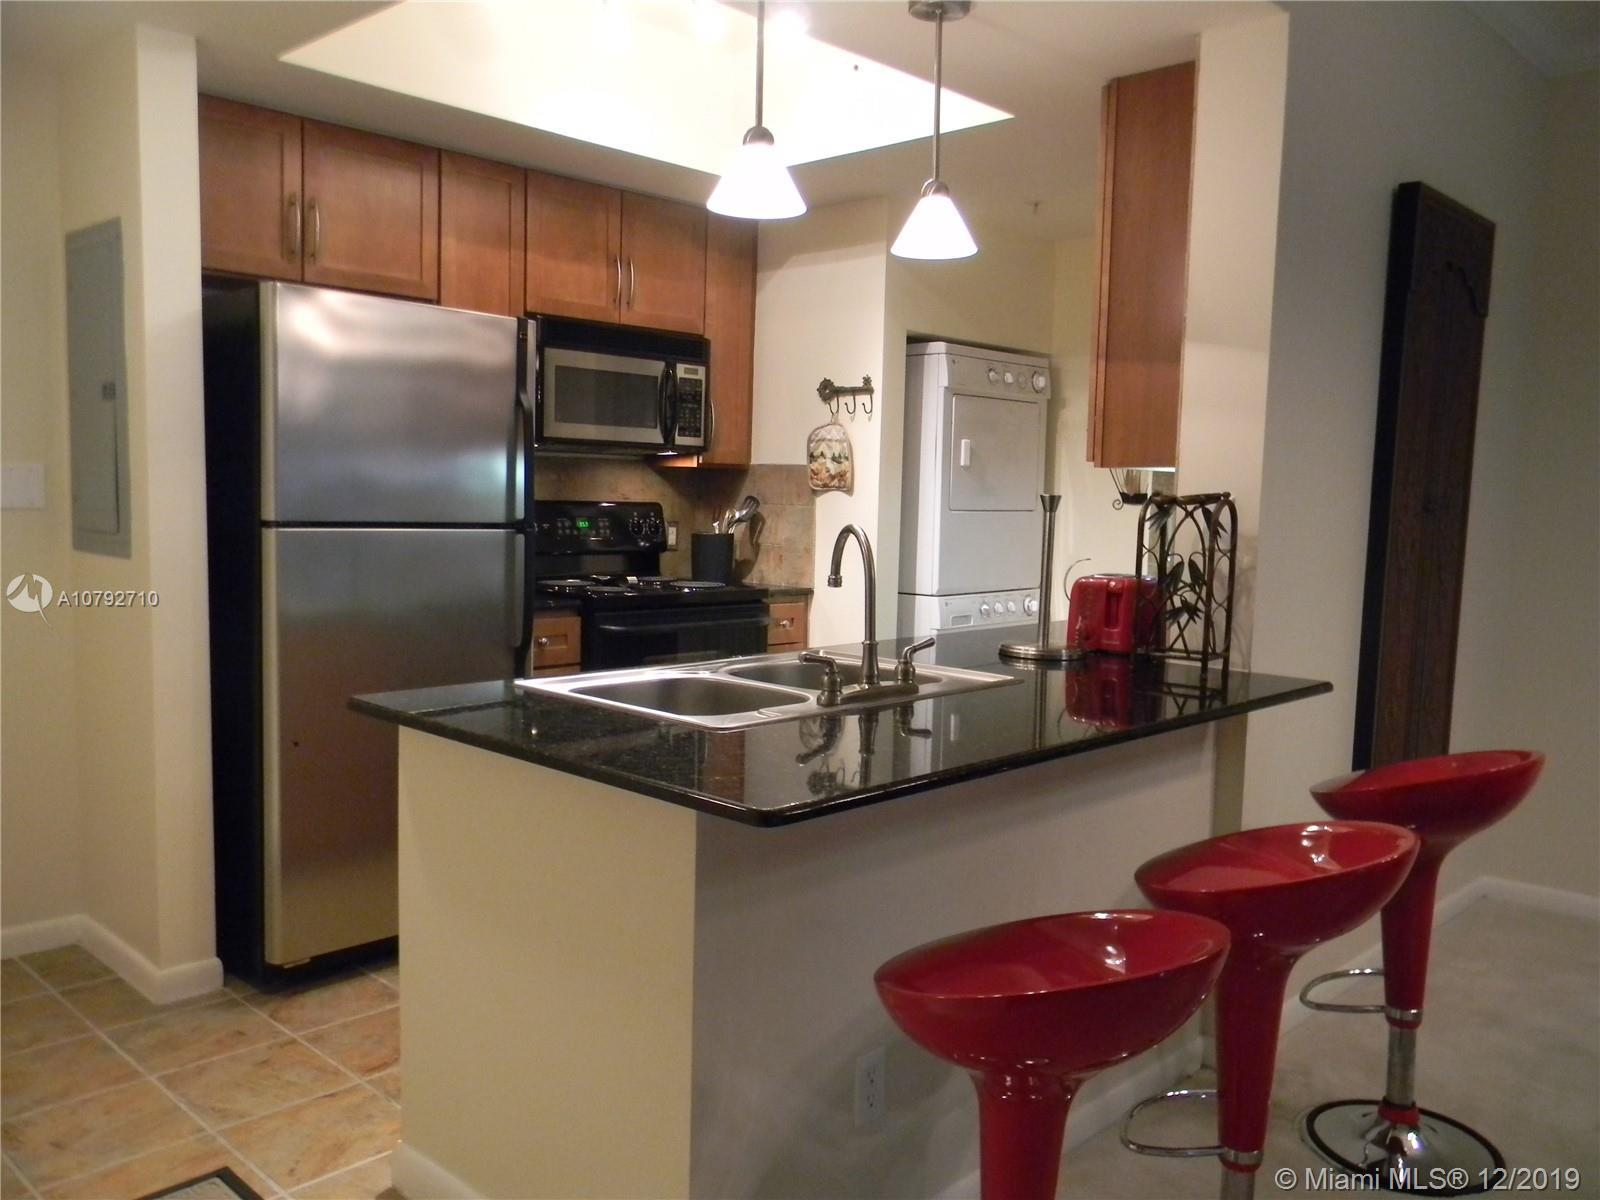 This condo has the largest 1 BR floor plan at Cite: mint 1/1 with newer shiny & elegant marble tiles